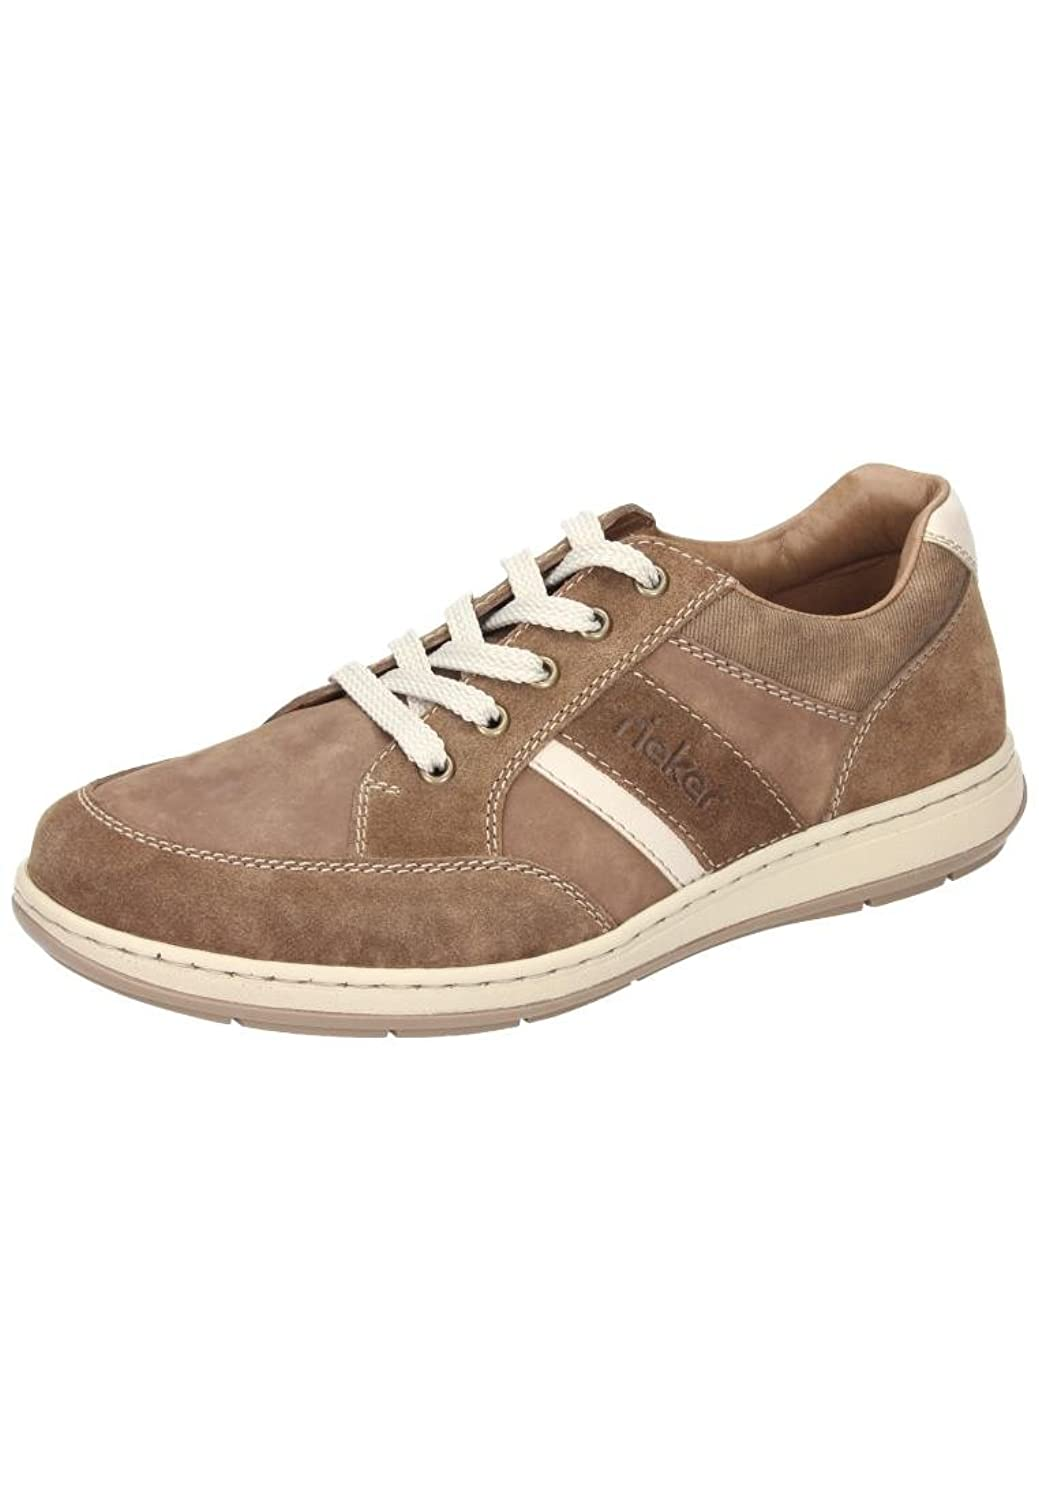 Rieker unisex lace up shoe brown/chalk